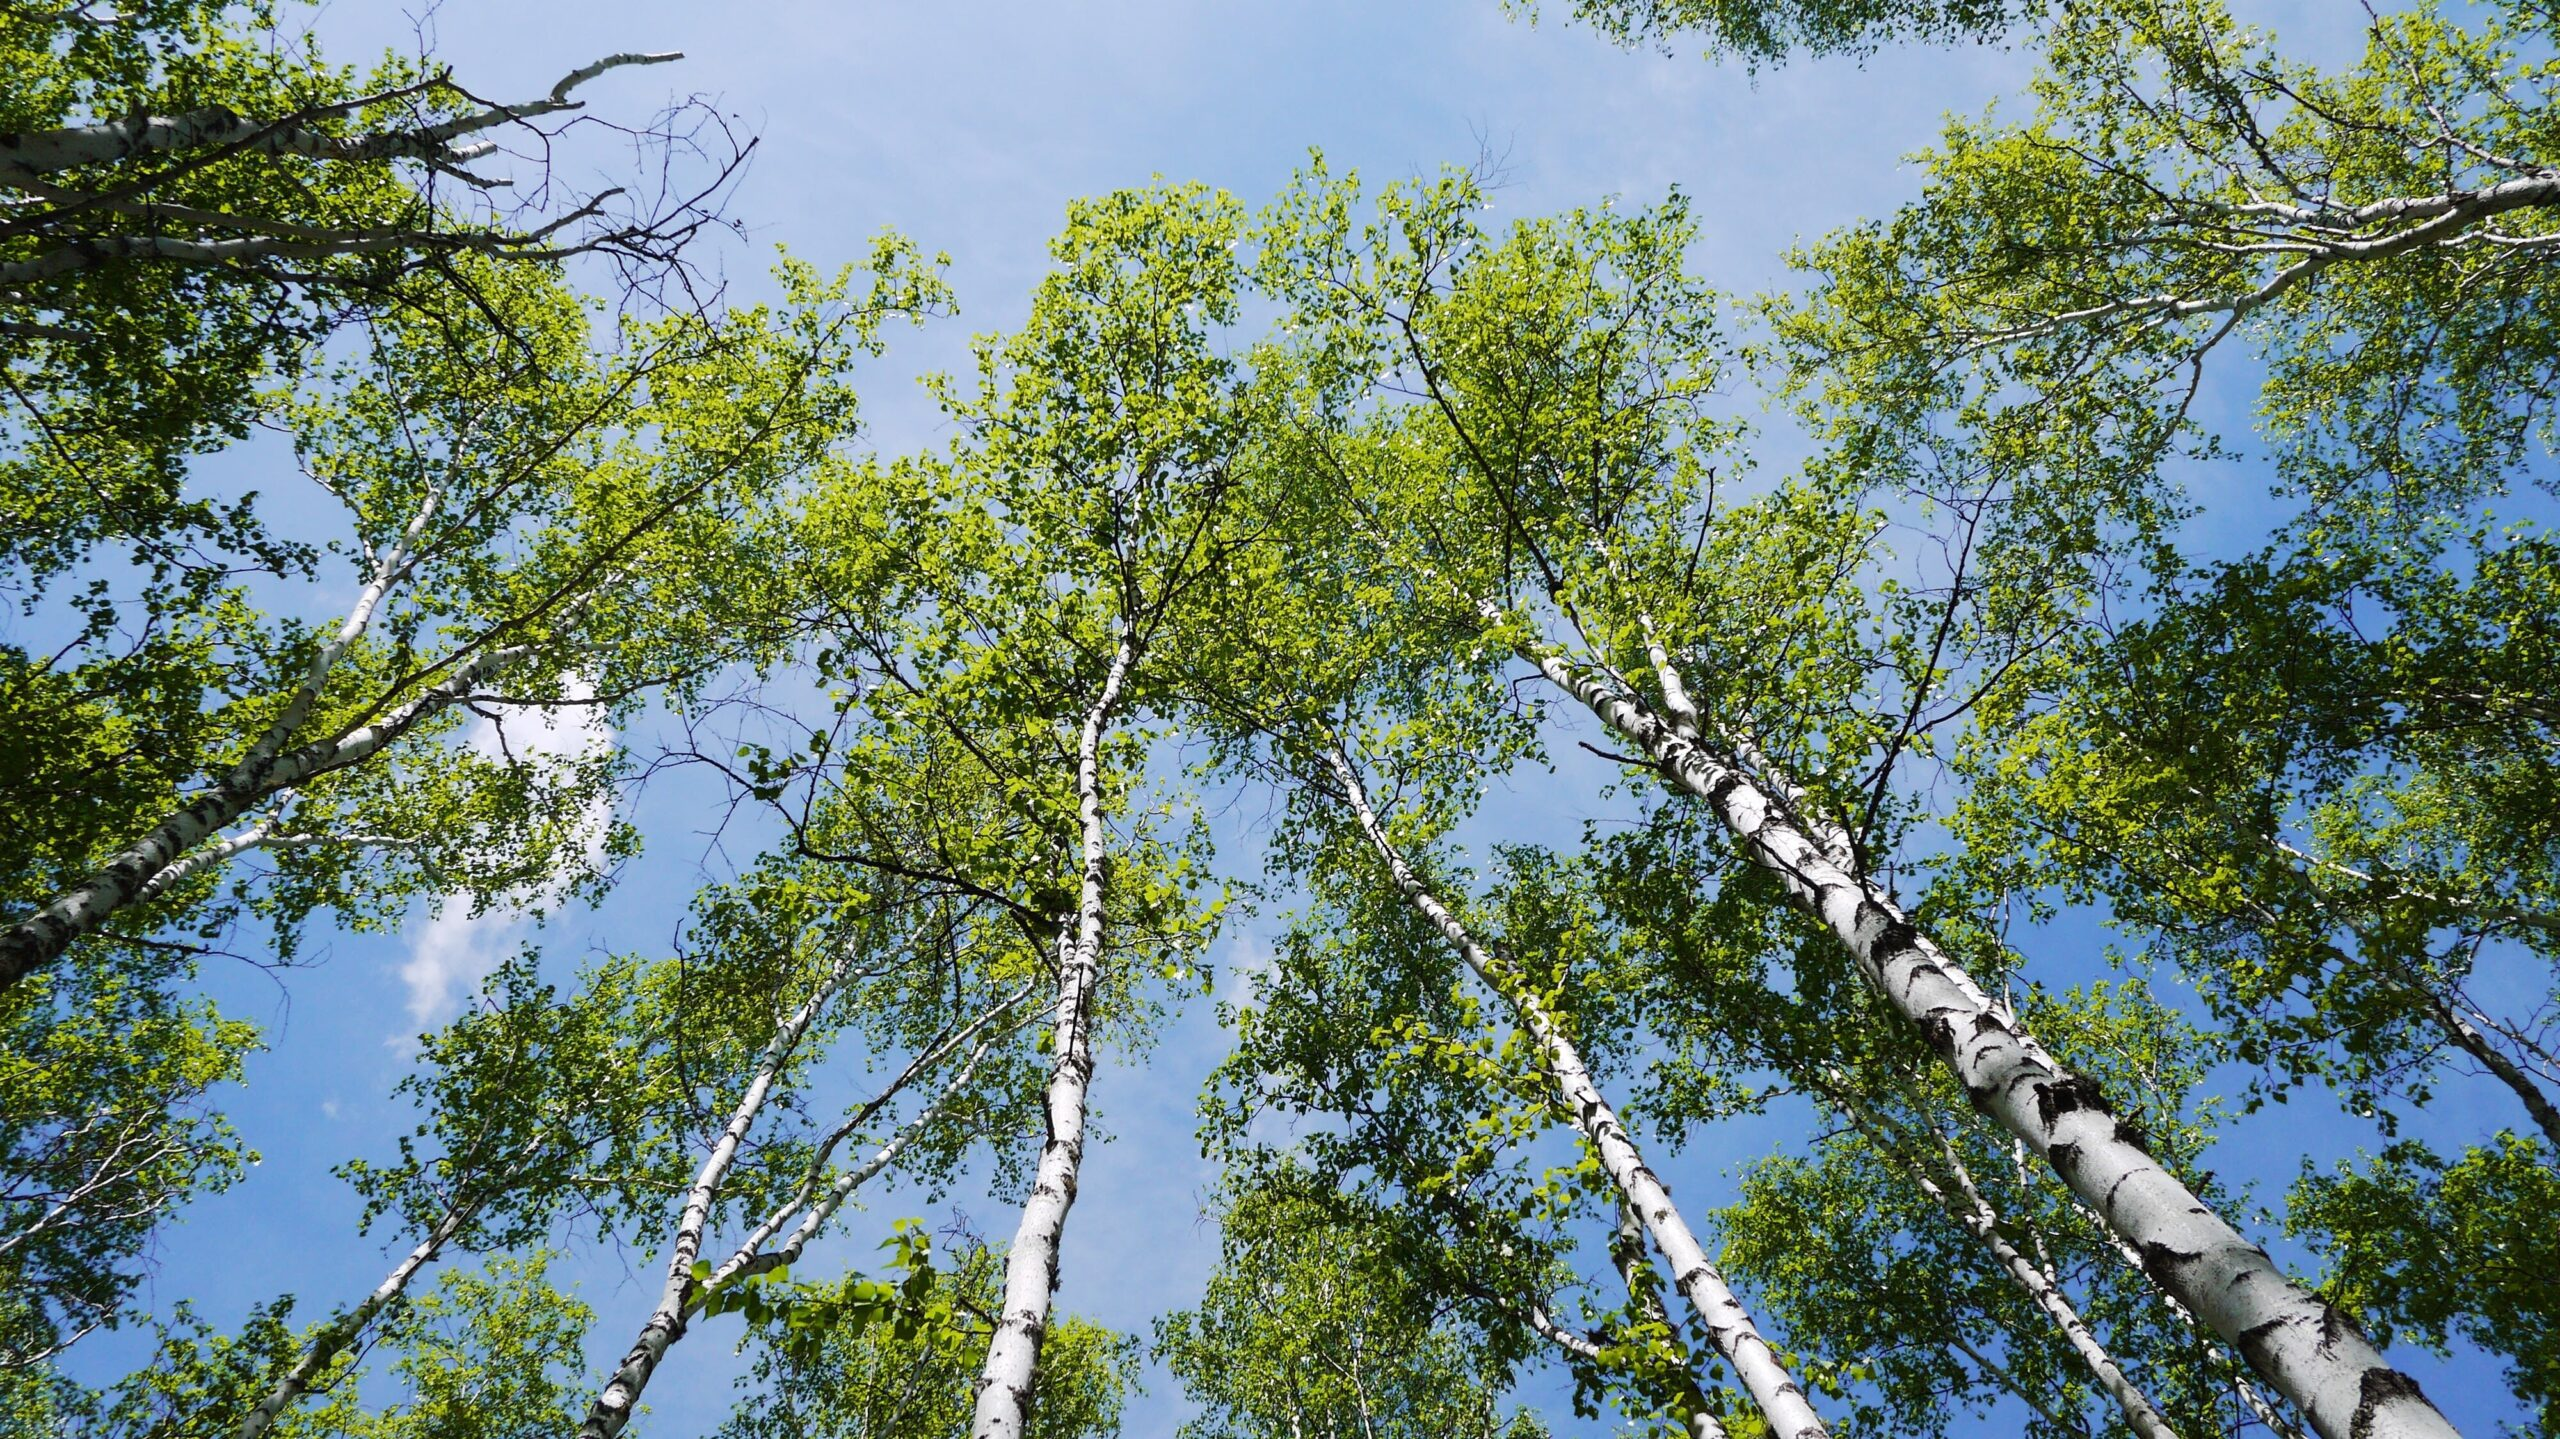 Cross-allergies are common with birch allergies